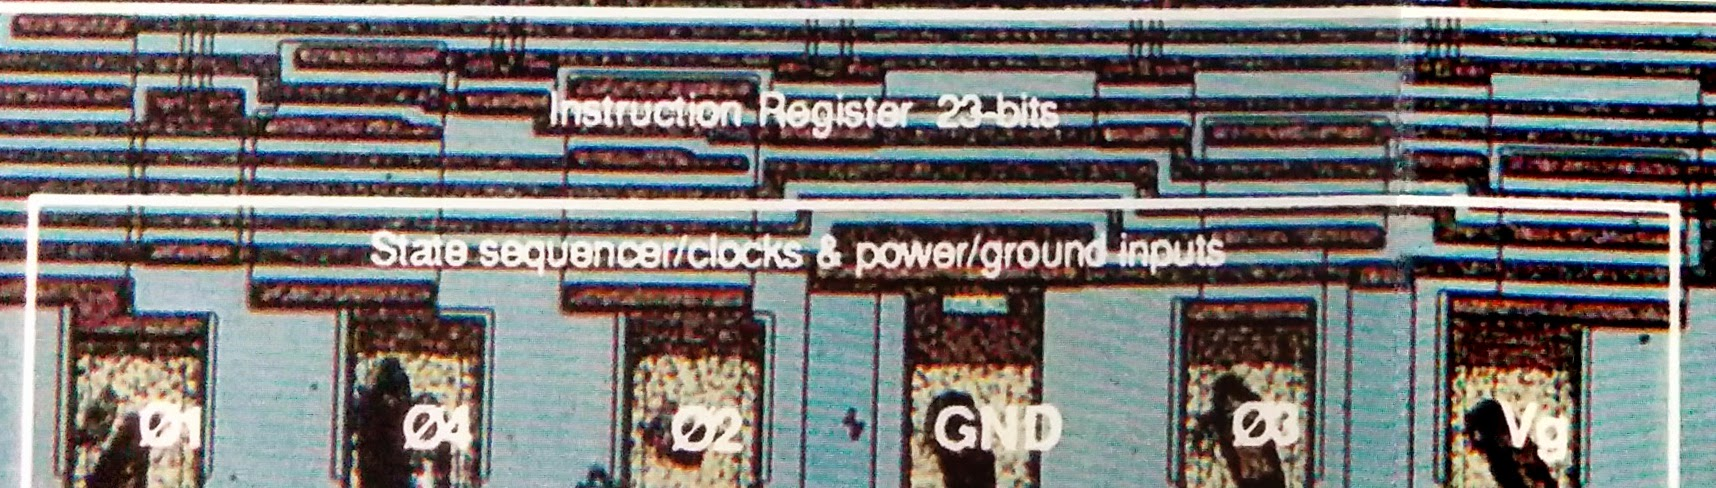 The Texas Instruments Tmx 1795 Almost First Forgotten Free Electronic Circuits 8085 Projects Blog Archive Numerically Detail Of Al1 Die Photo Showing Fictional Instruction Register 23 Bits